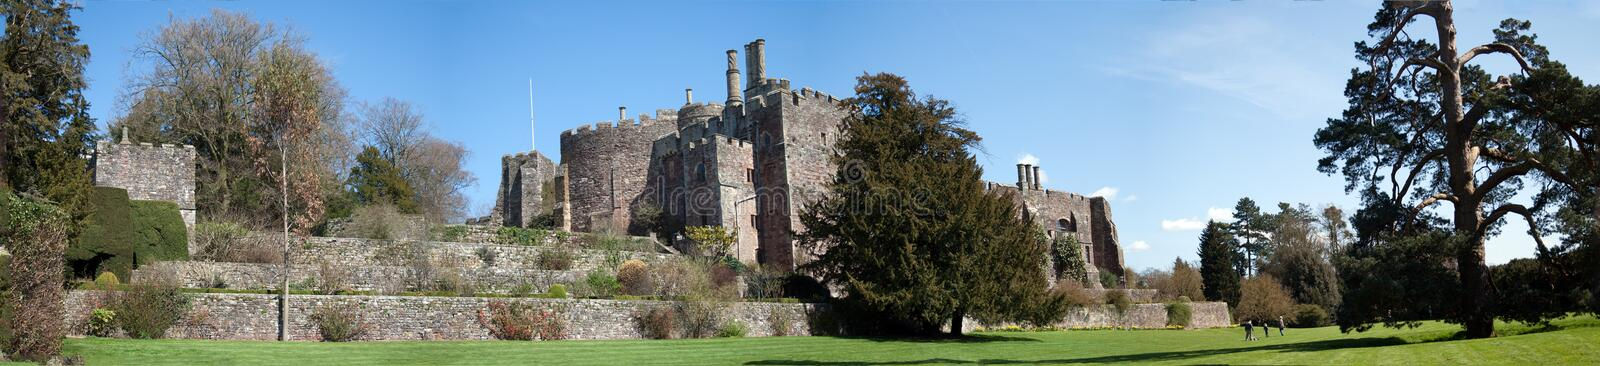 Berkeley Castle fotos de stock royalty free